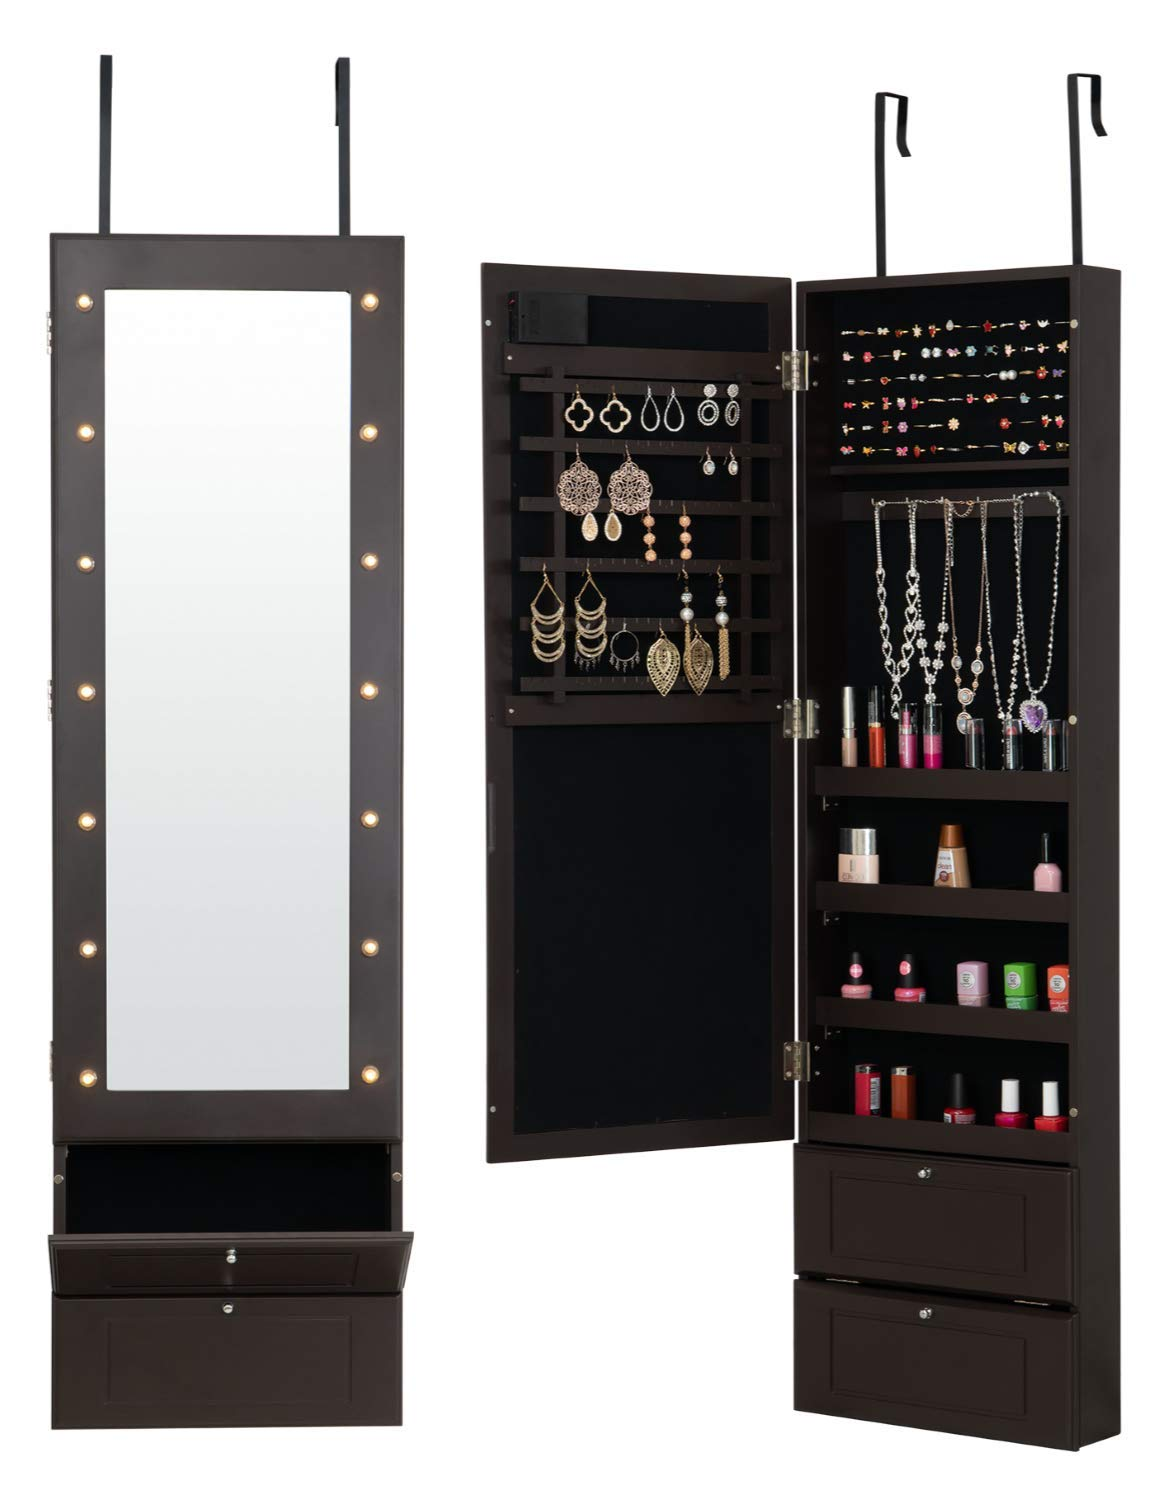 Fineboard FB-JC05-BN LED Lights Jewelry Cabinet Organizer with Mirror and Two Shelves, Brown by Fineboard